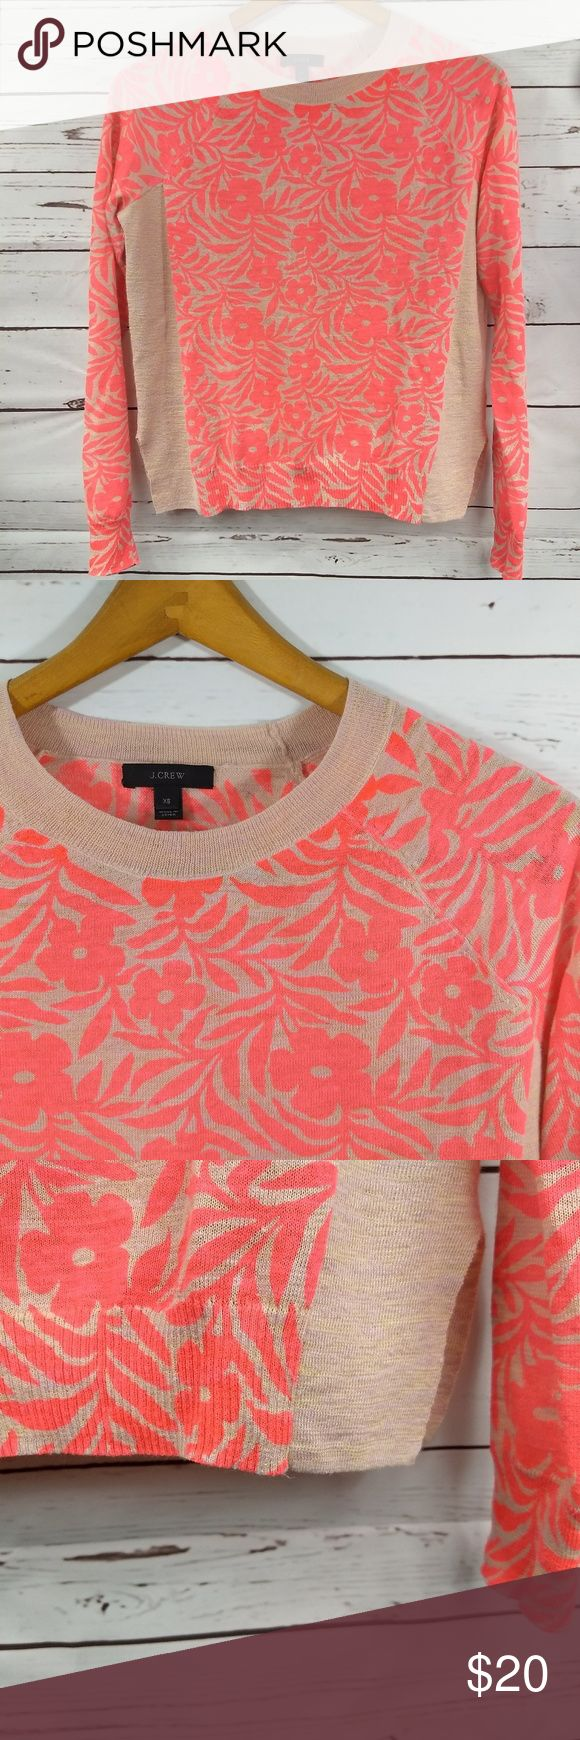 "J Crew XS Womens Spring Lightweight Sweater This great spring sweater is in excellent used condition. The inside ""care instructions"" tag has been removed.  It is a lightweight knit, perfect for spring or cool summer nights!  The floral pattern is a bright orange/salmon/pink color with side panels of tan. Side slits on both sides are 4""  Item Dimensions, Compare to a favorite item in your own closet to ensure a good fit!  Arm pit to armpit: 20""  Shoulder to hem: 21.5""  Arm length: approx. 22"""